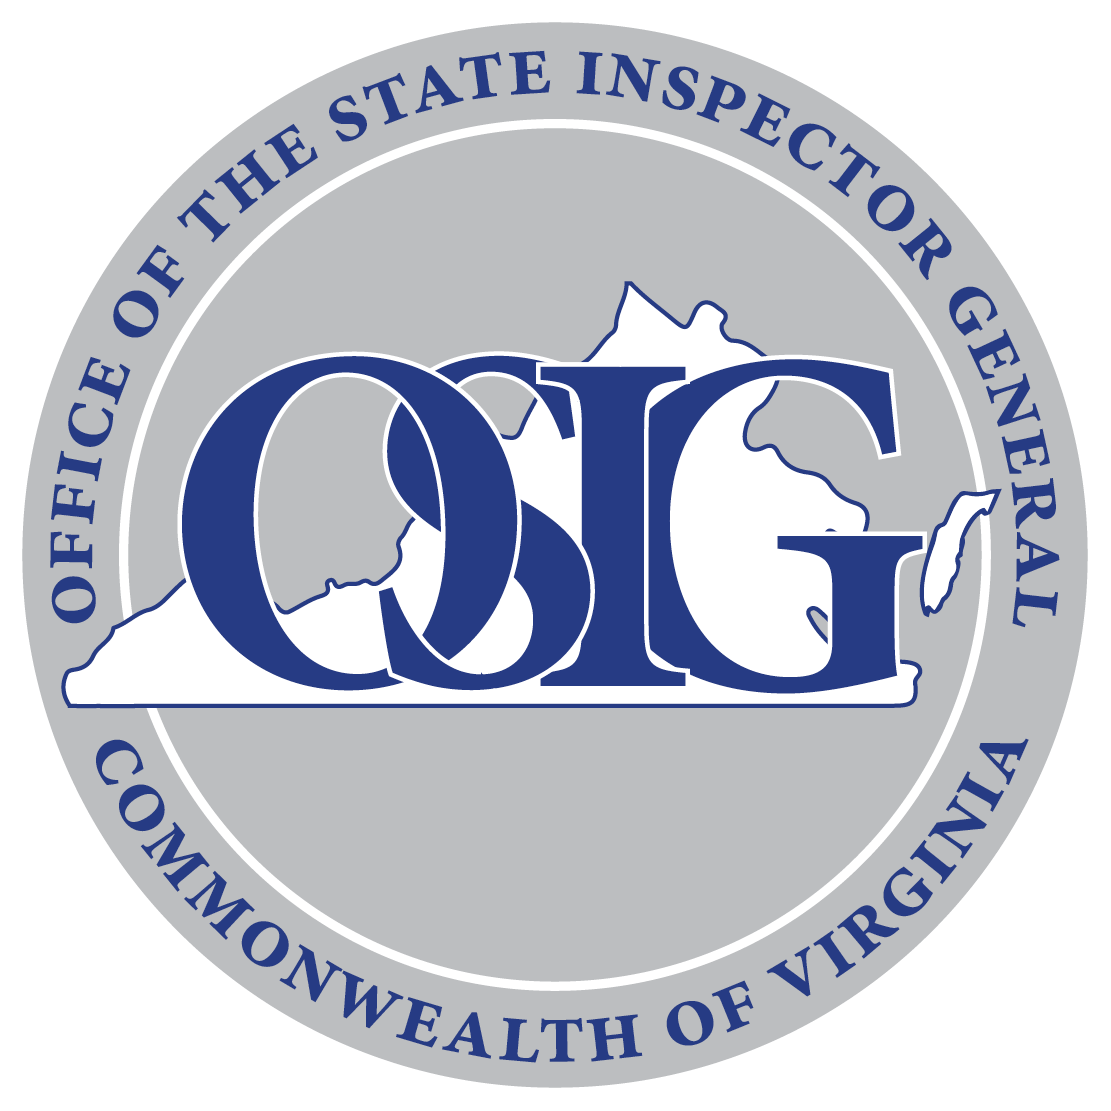 Office of the State Inspector General